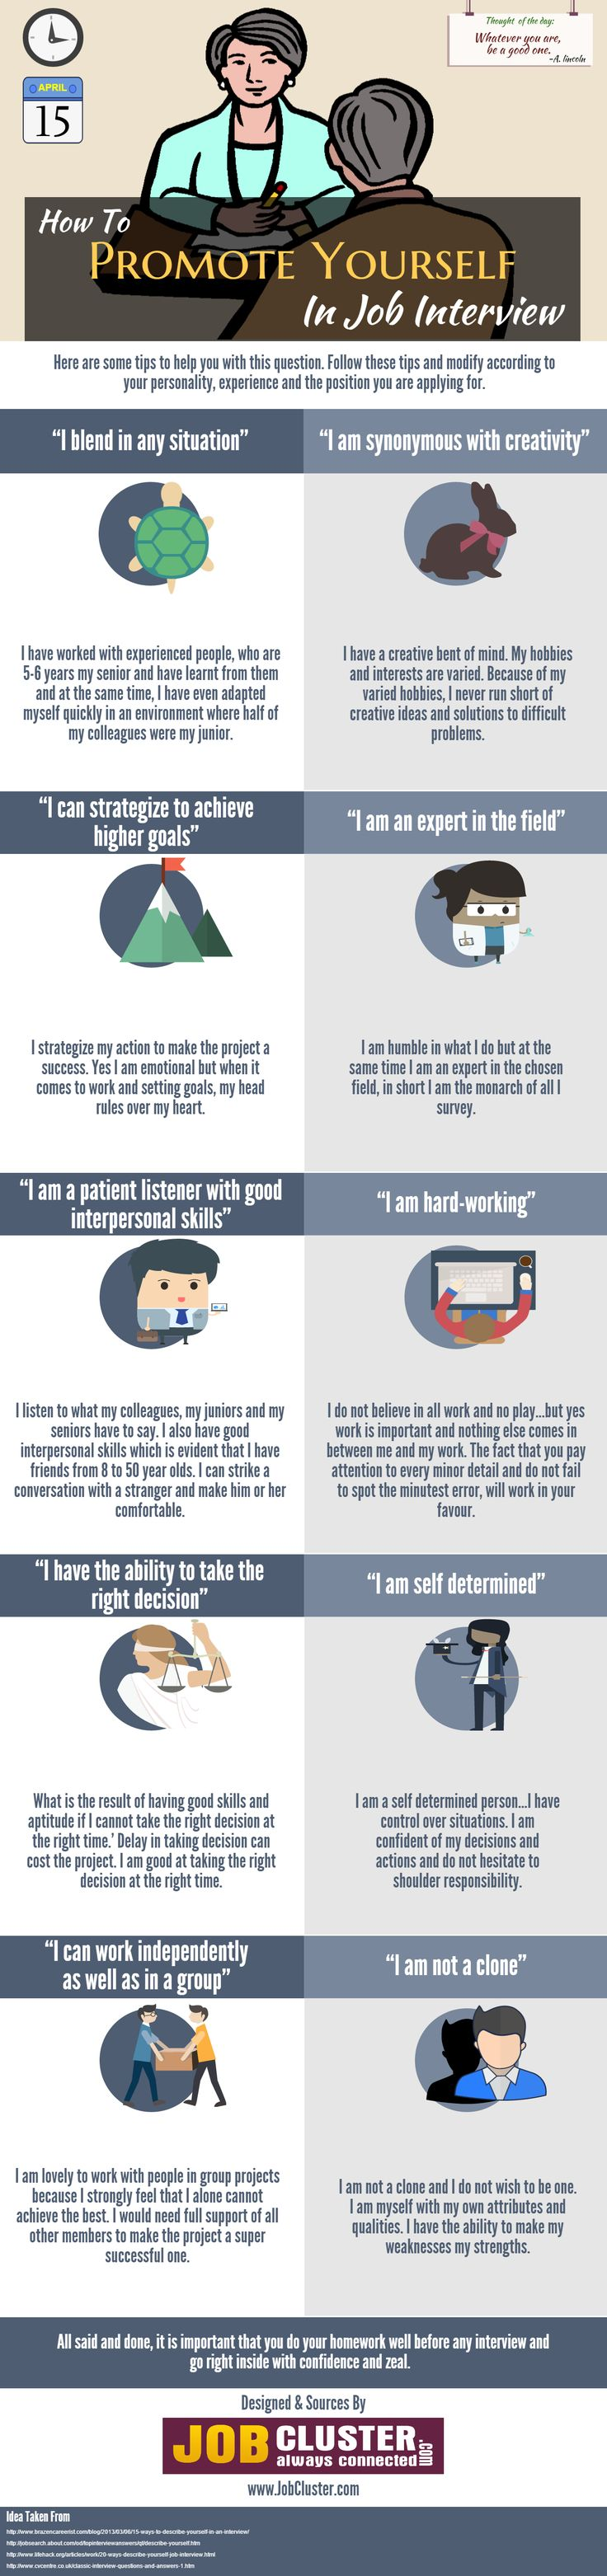 best images about interview tips resume tips self promotion in job interview infographic